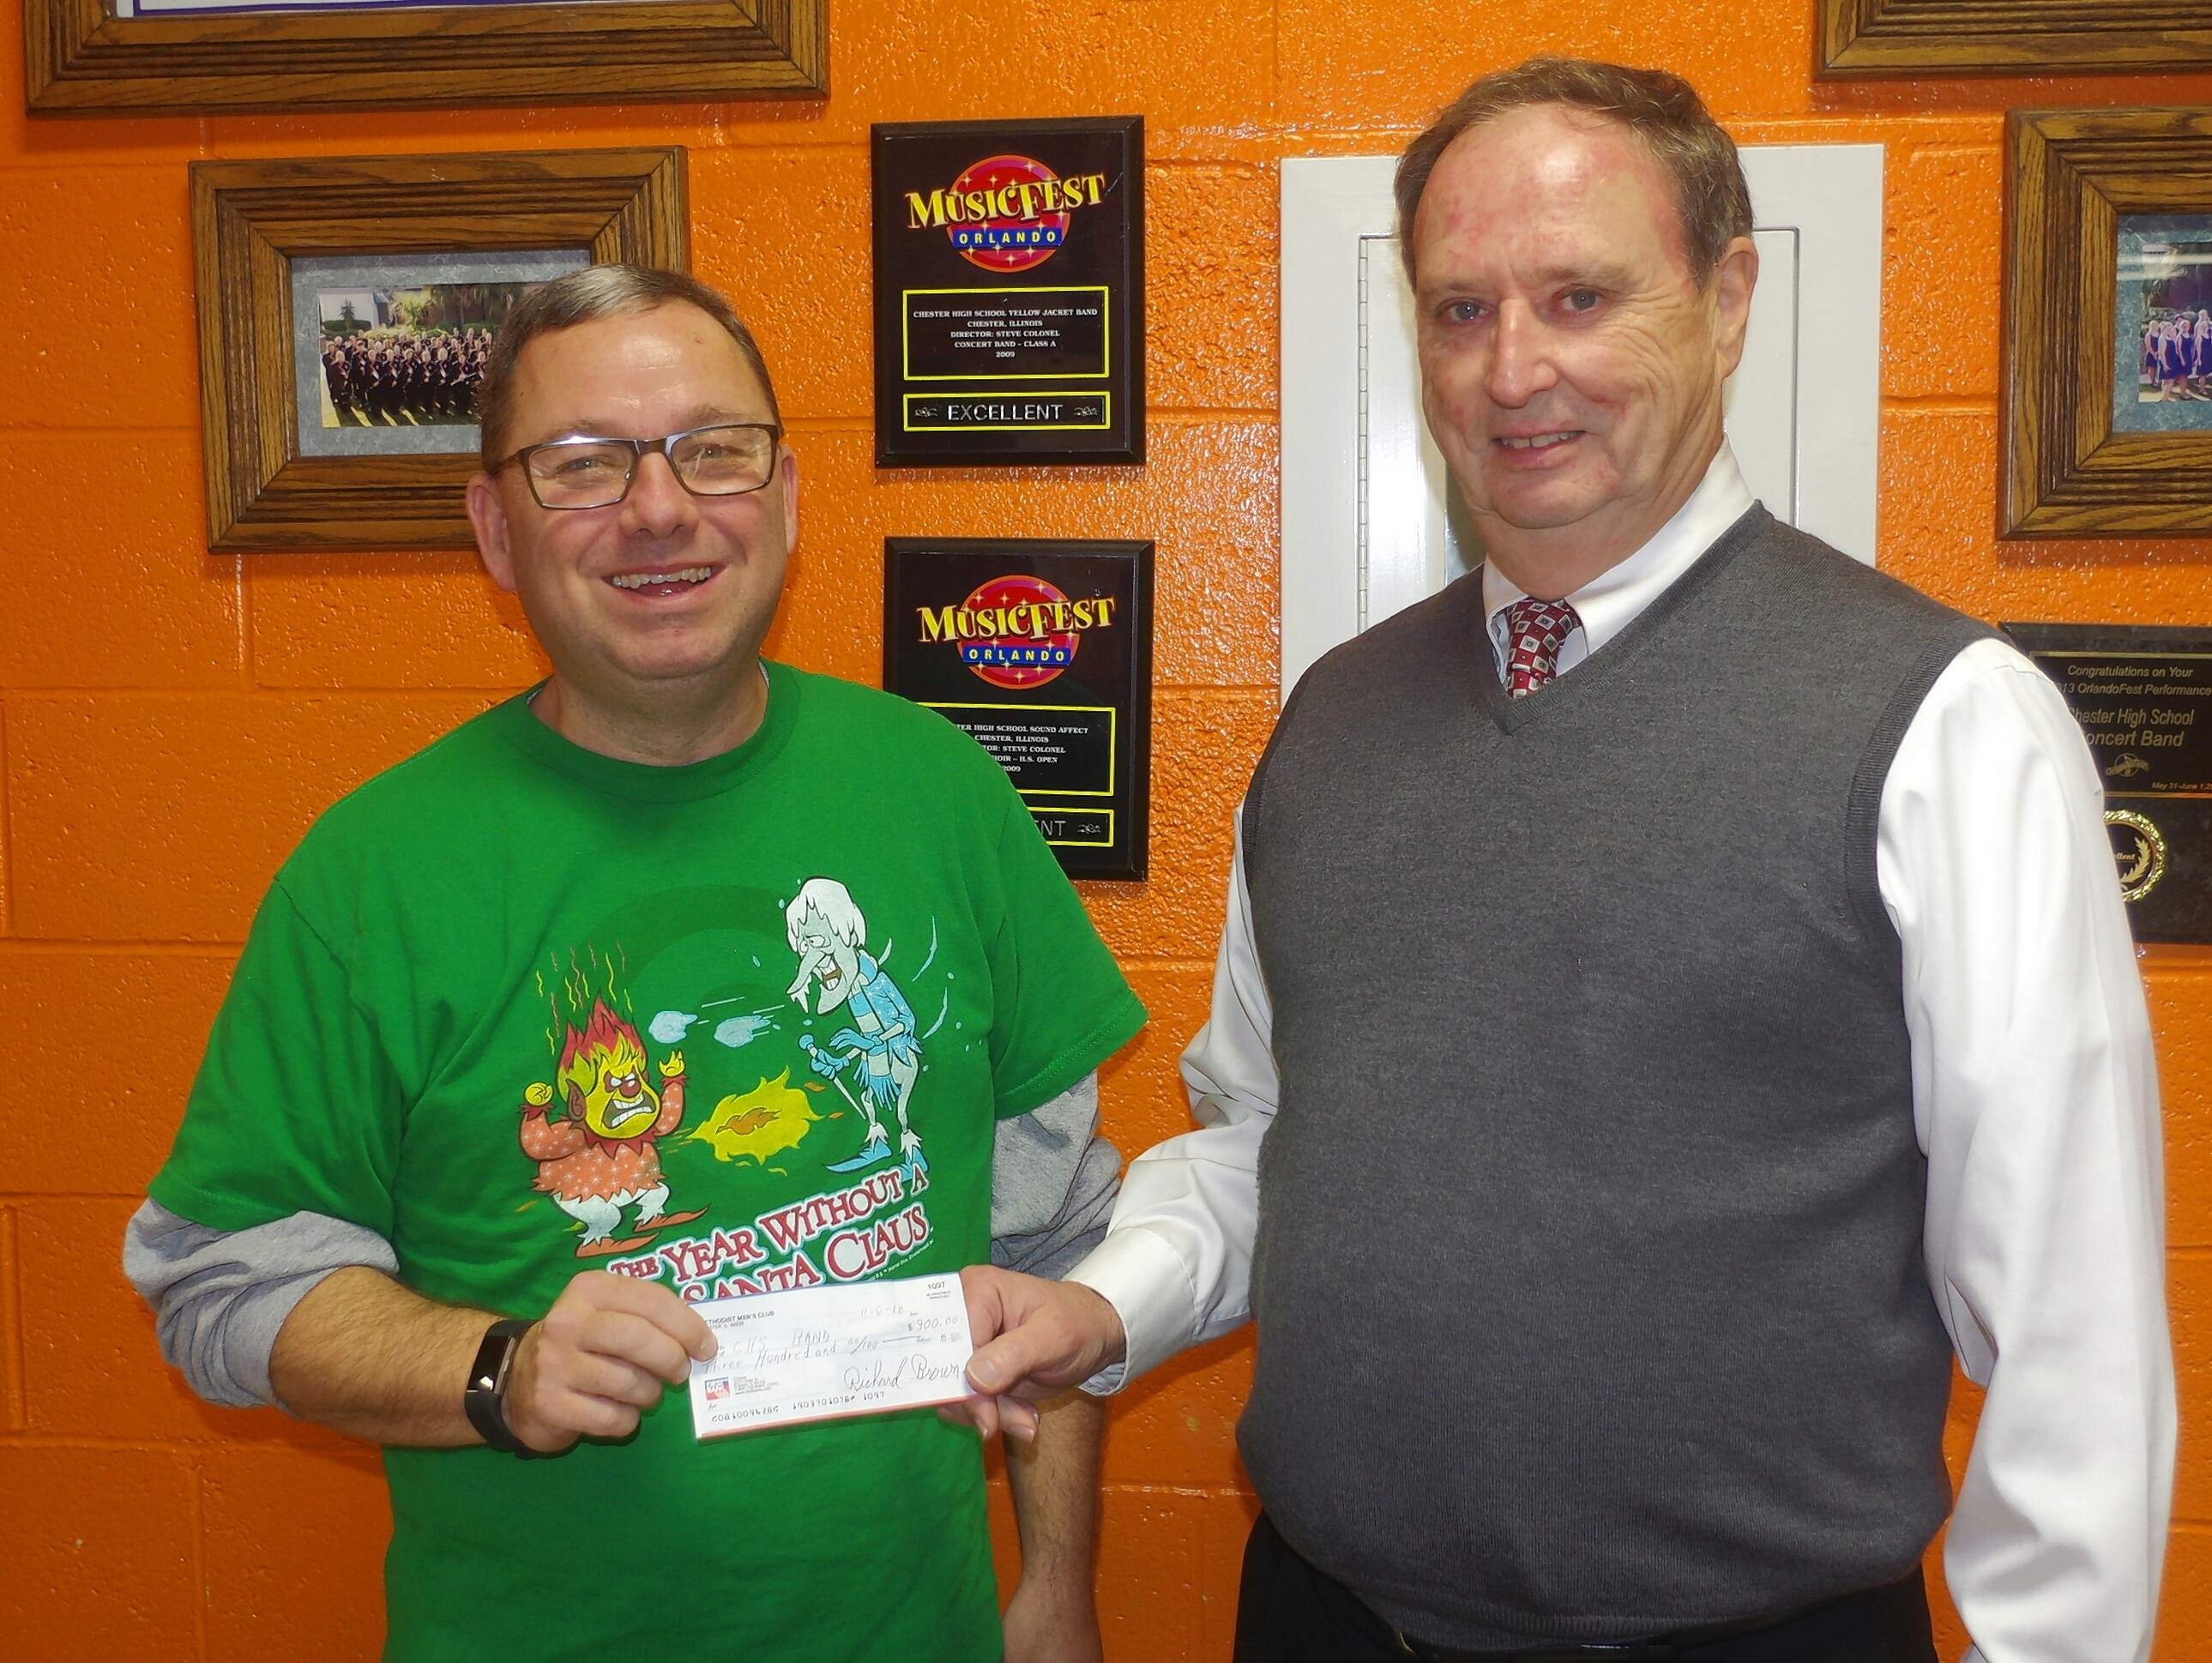 Judge Richard A. Brown, the Methodist Men's treasurer, right, hands the $300 donation to Steve Colonel, Chester High School music director.